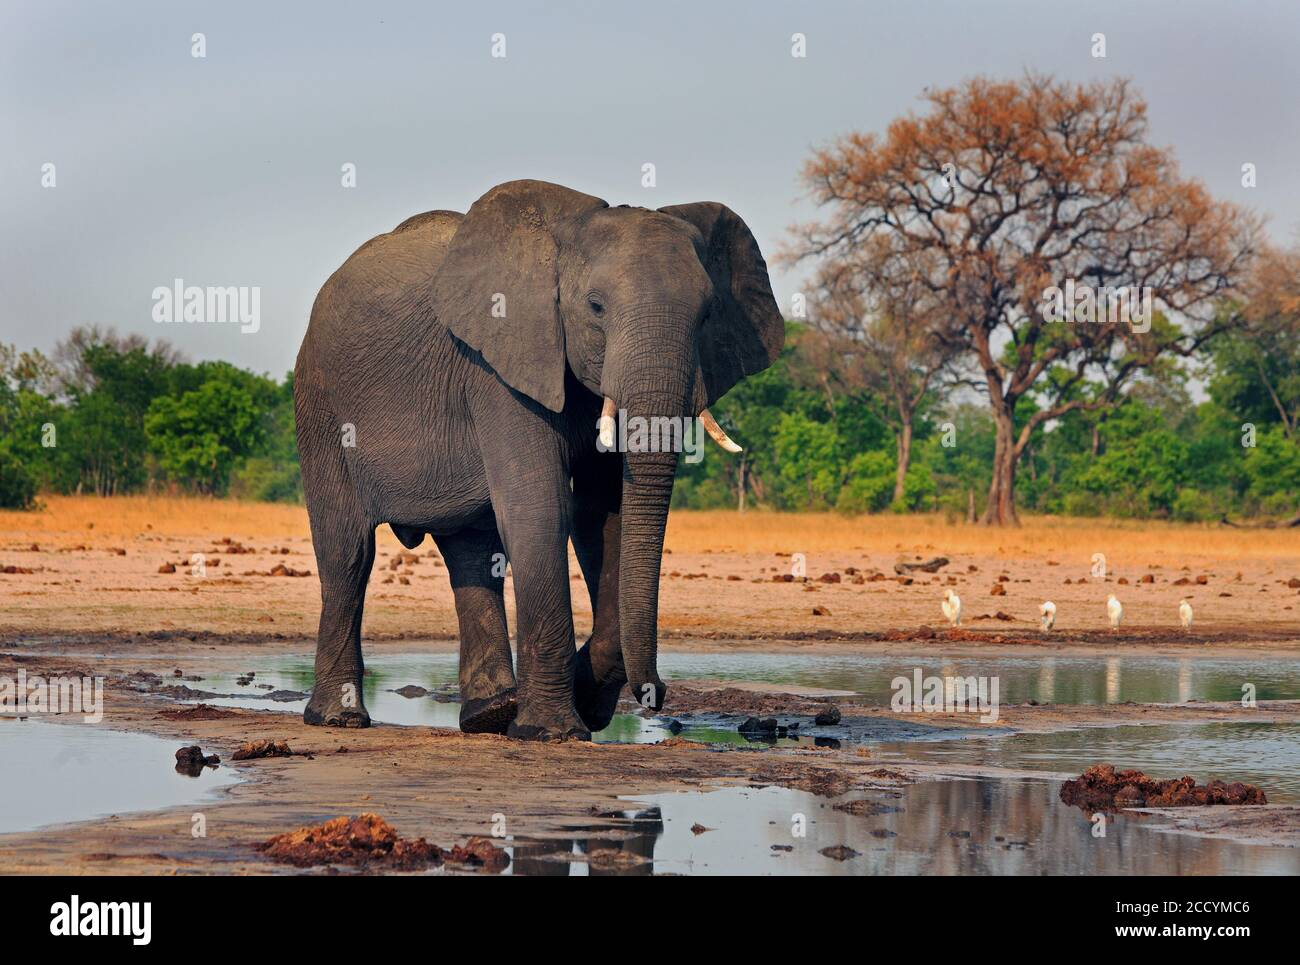 African Elephant standing at a waterhole with the african vegetation in the background.  Makololo, Hwange National Park, Zimbabwe, Southern Africa Stock Photo